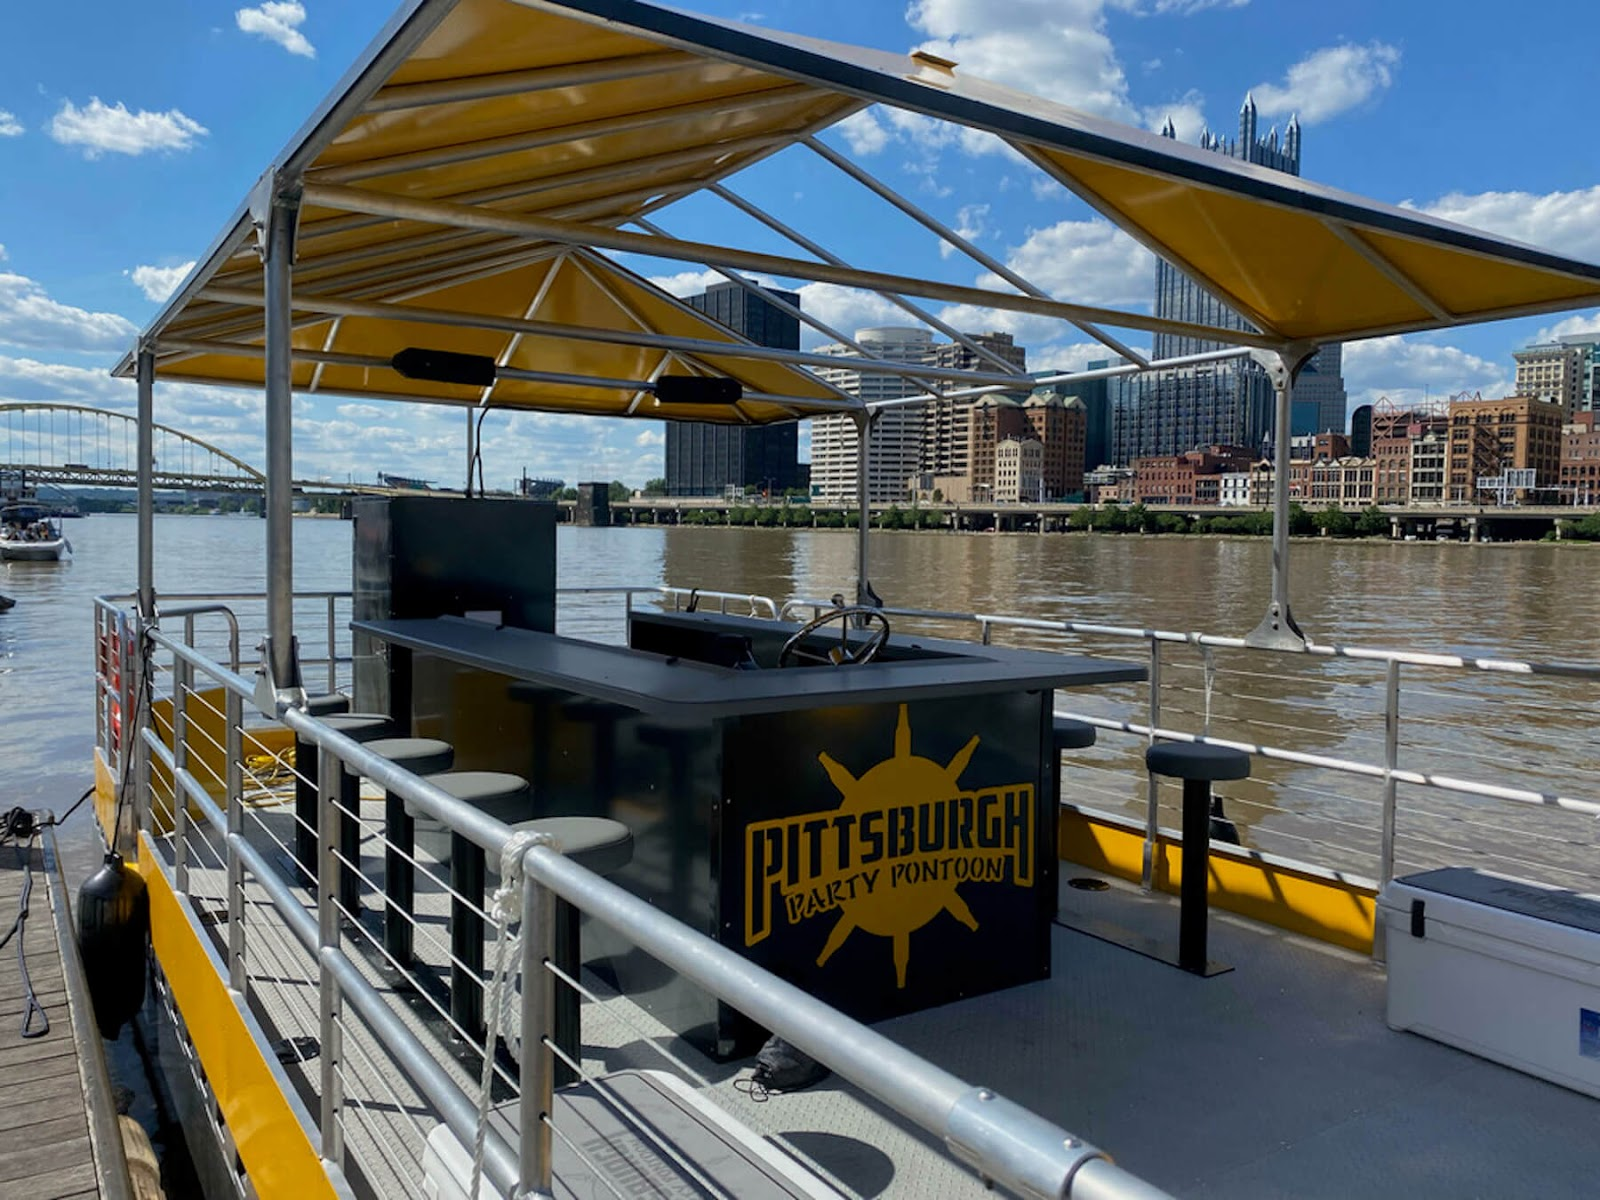 Pittsburgh Pedal Boat